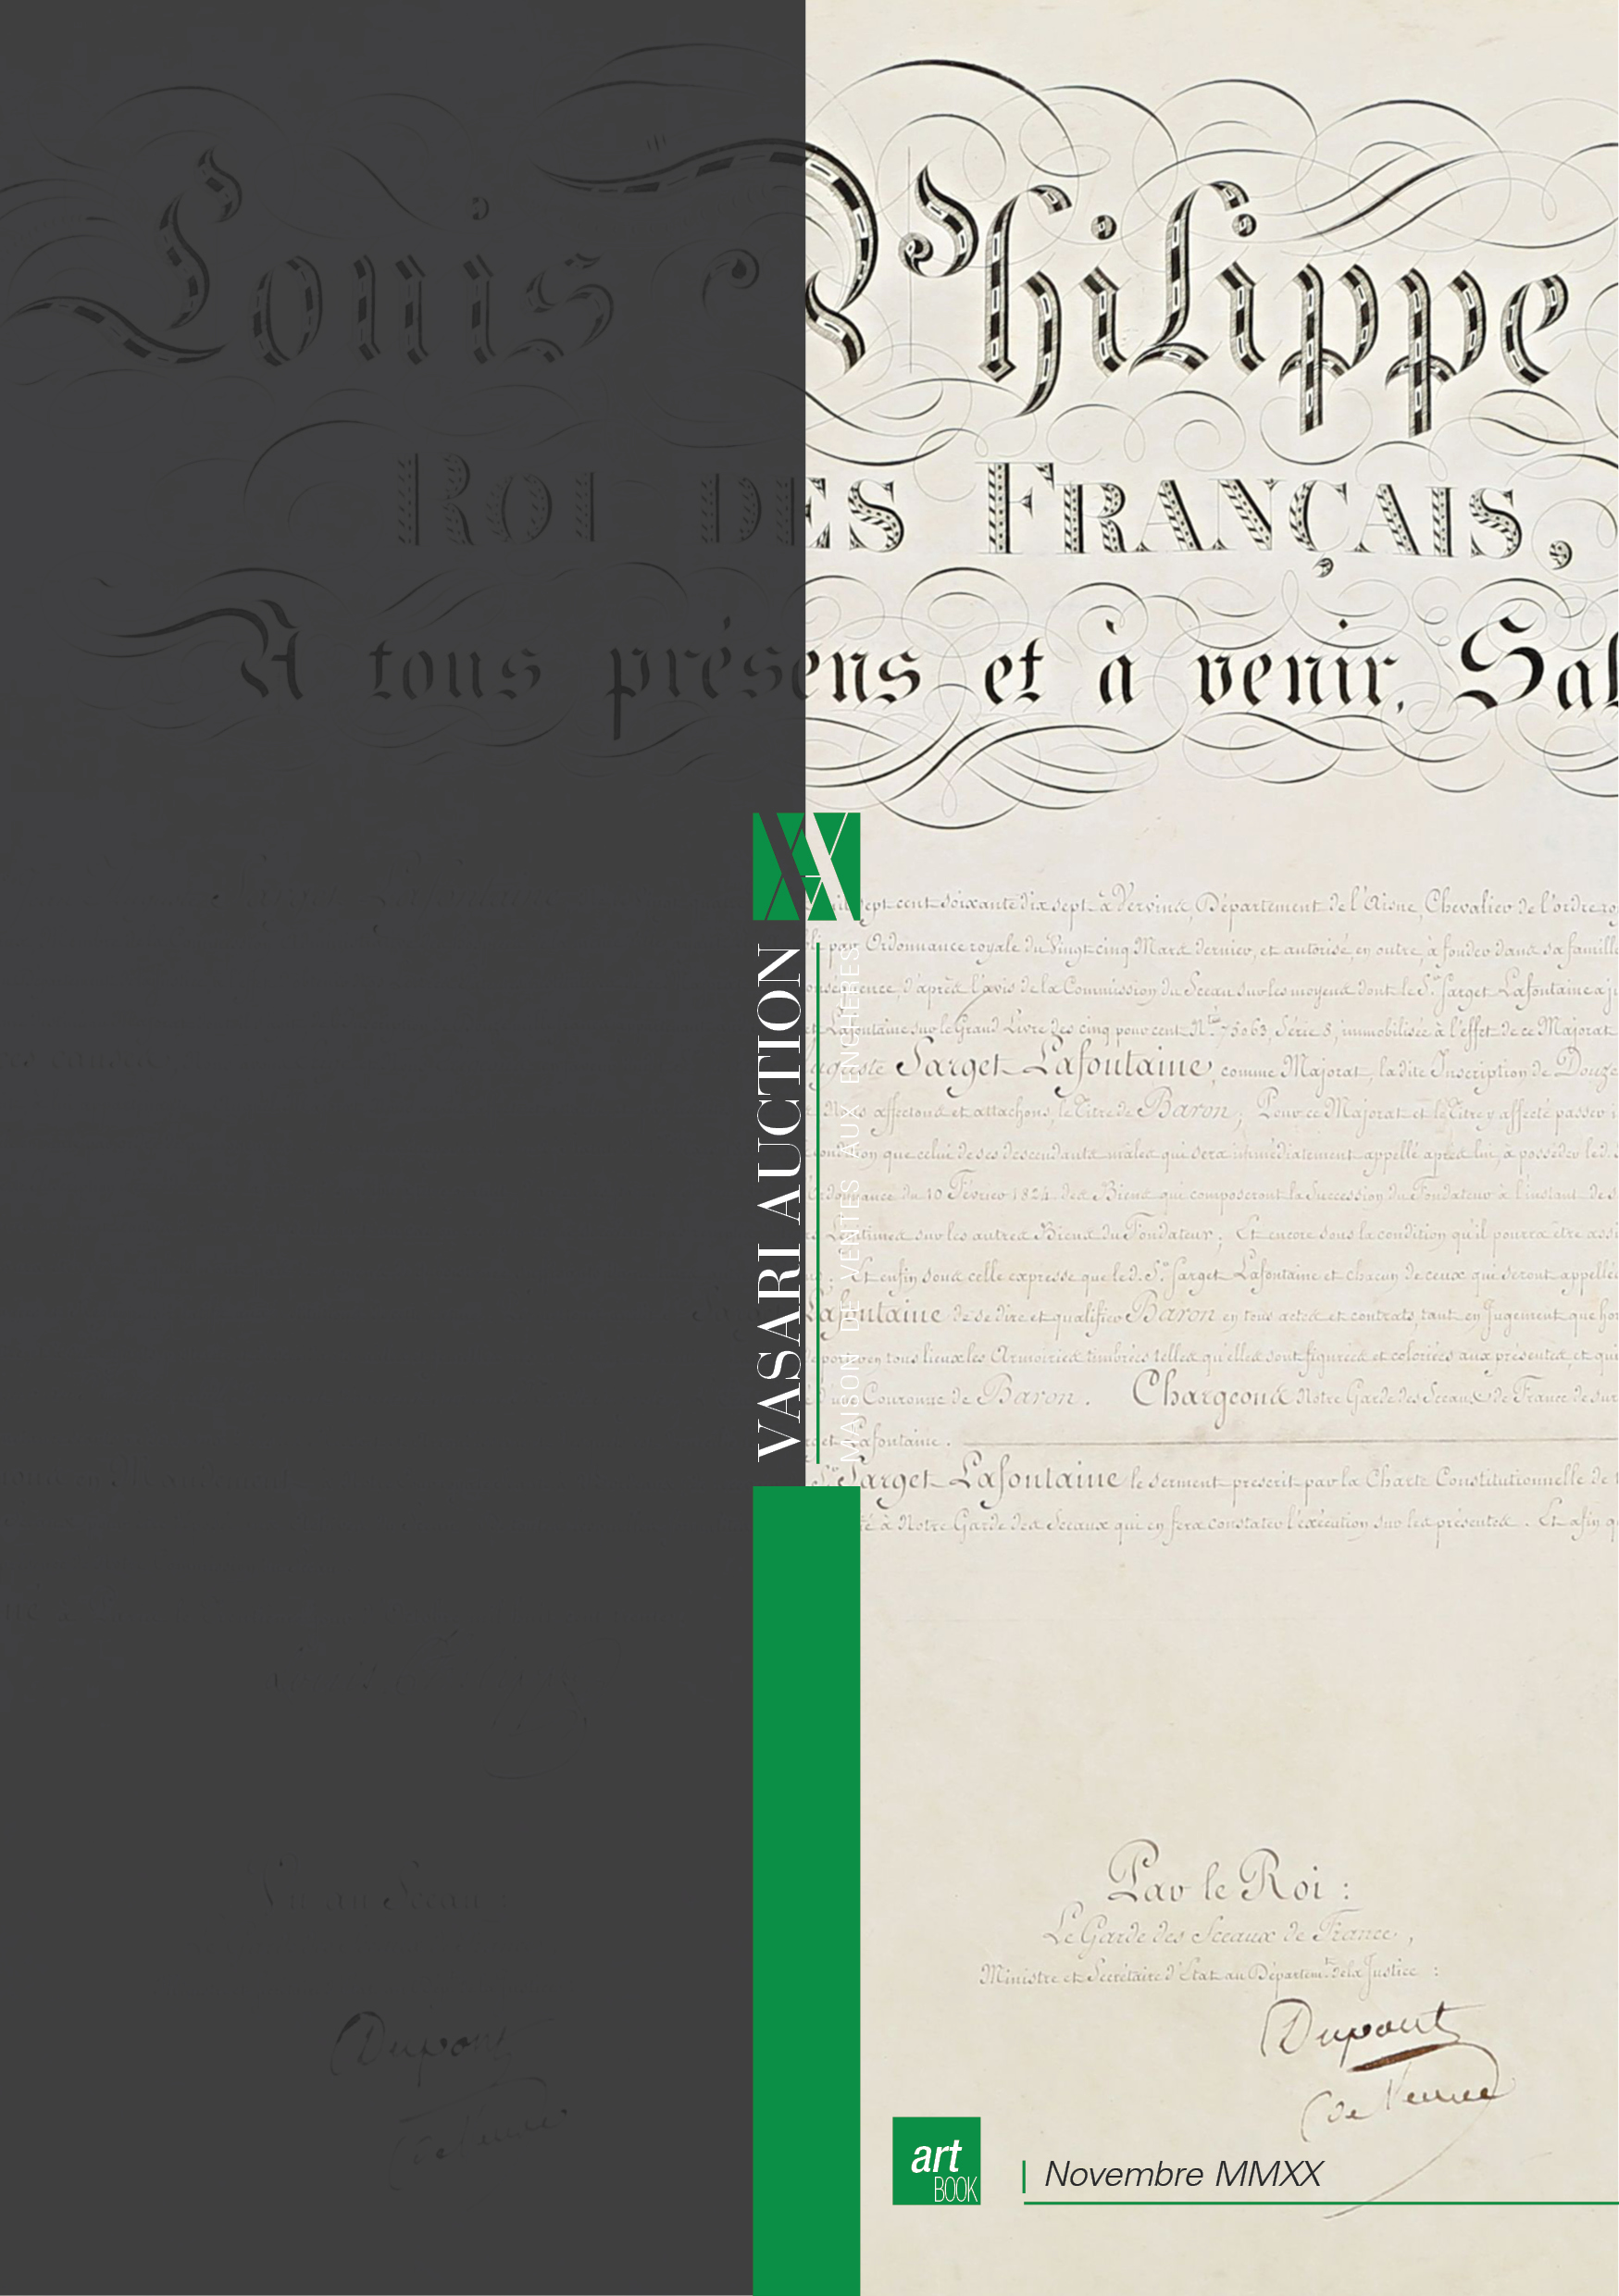 Vente Passion des Livres by Vasari Auction chez Vasari Auction : 222 lots